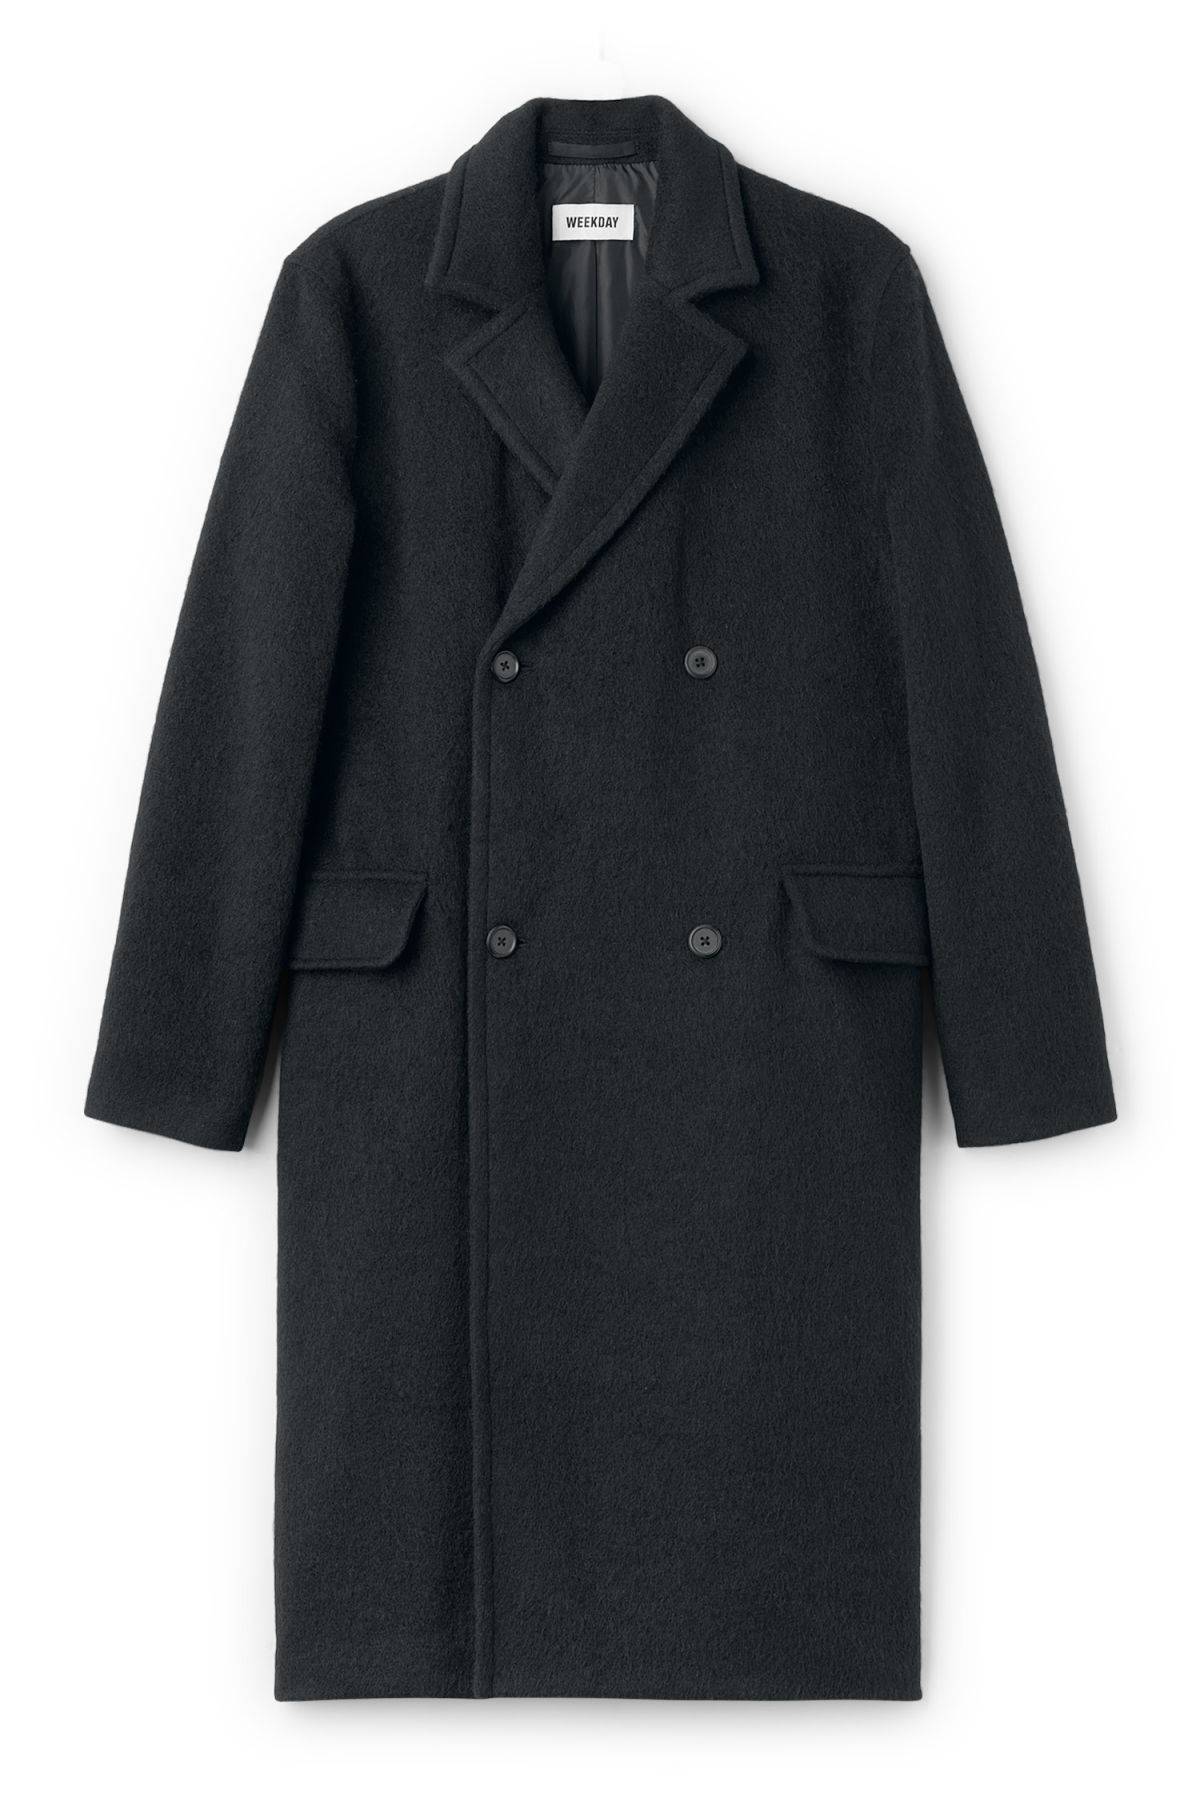 Front image of Weekday tristan coat in black